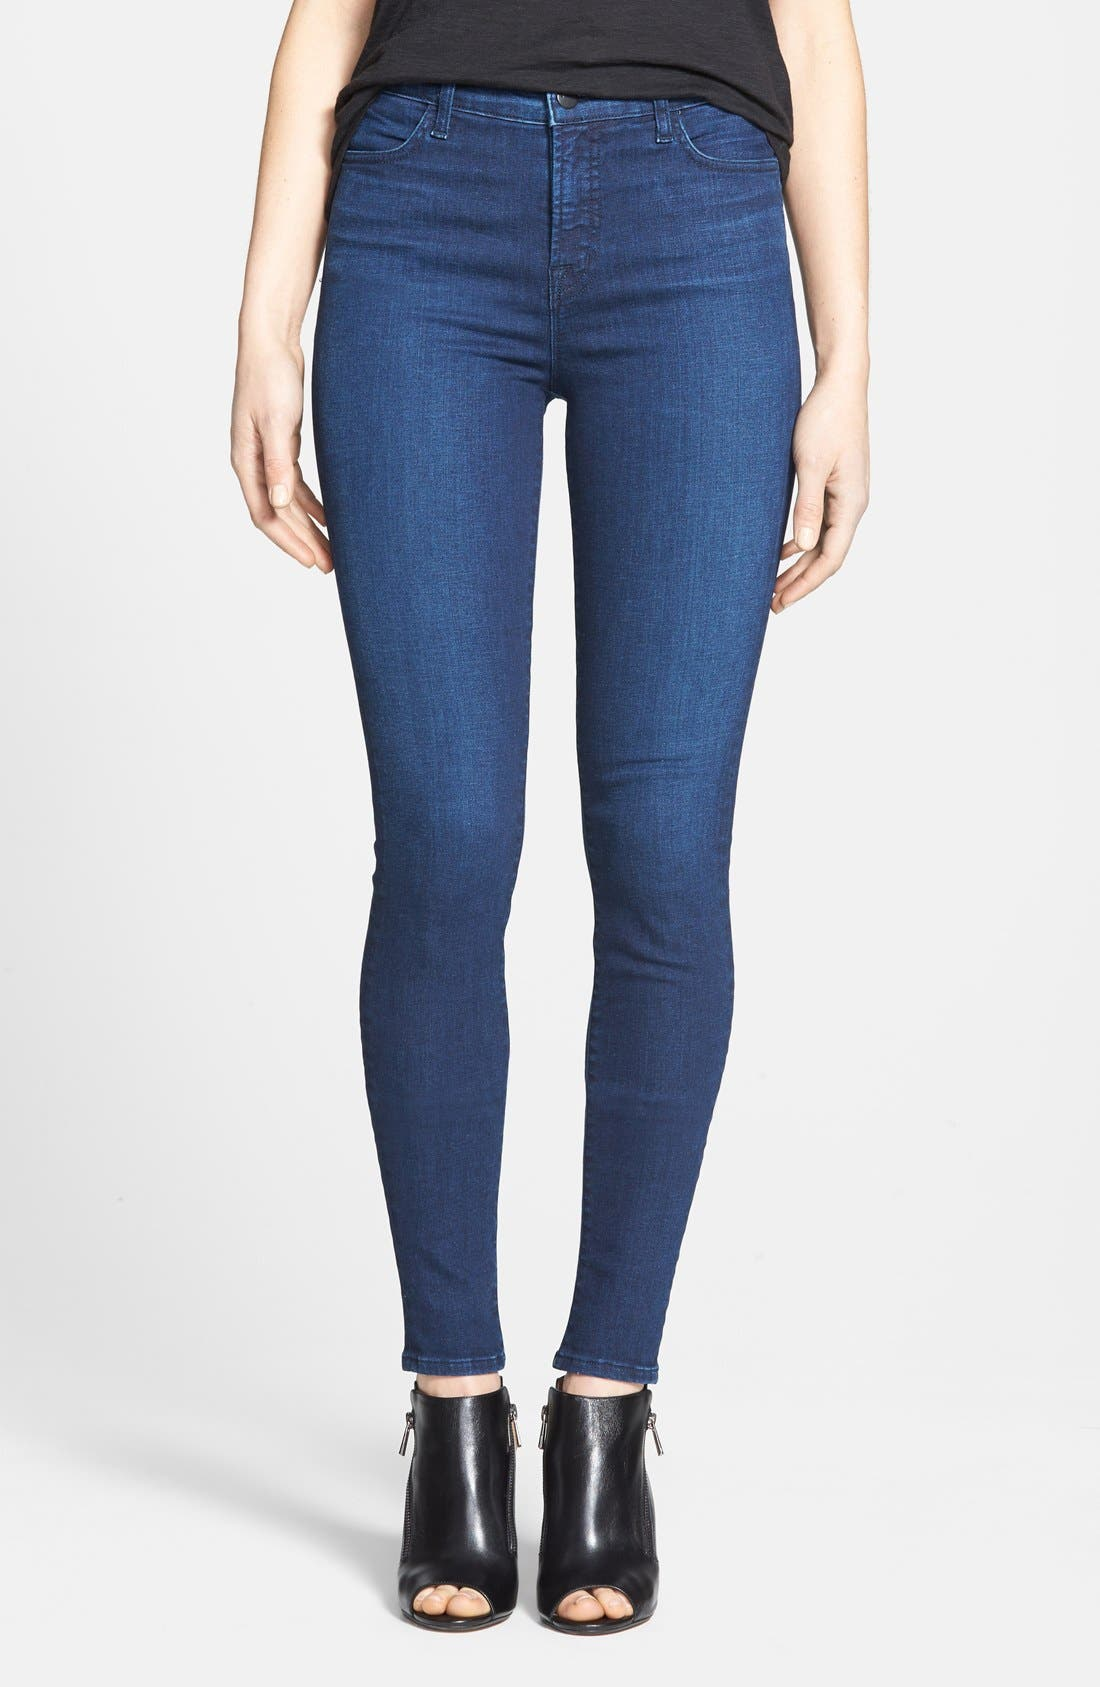 Alternate Image 1 Selected - J Brand 'Maria' High Rise Skinny Jeans (Supreme) (Nordstrom Exclusive)